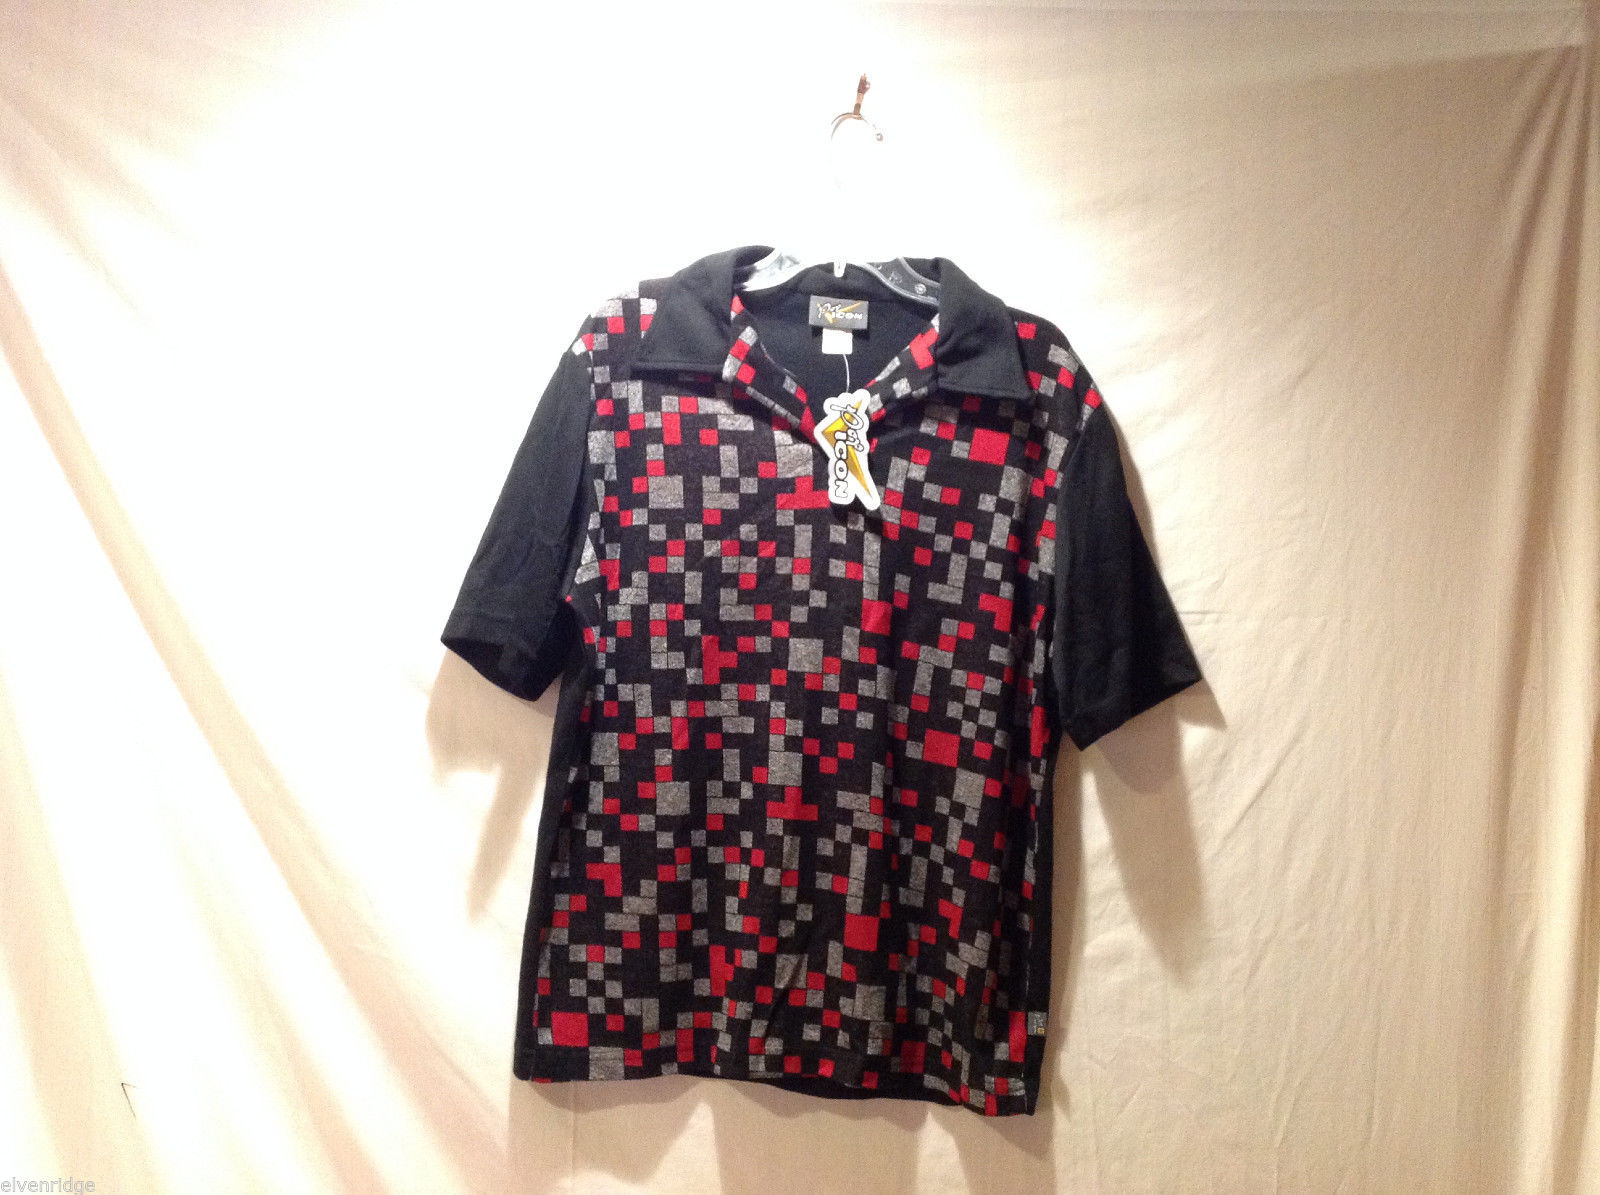 Pop Icon Black Polo Shirt with Front Red Gray Cube Pattern 100% Acrylic, Size XL